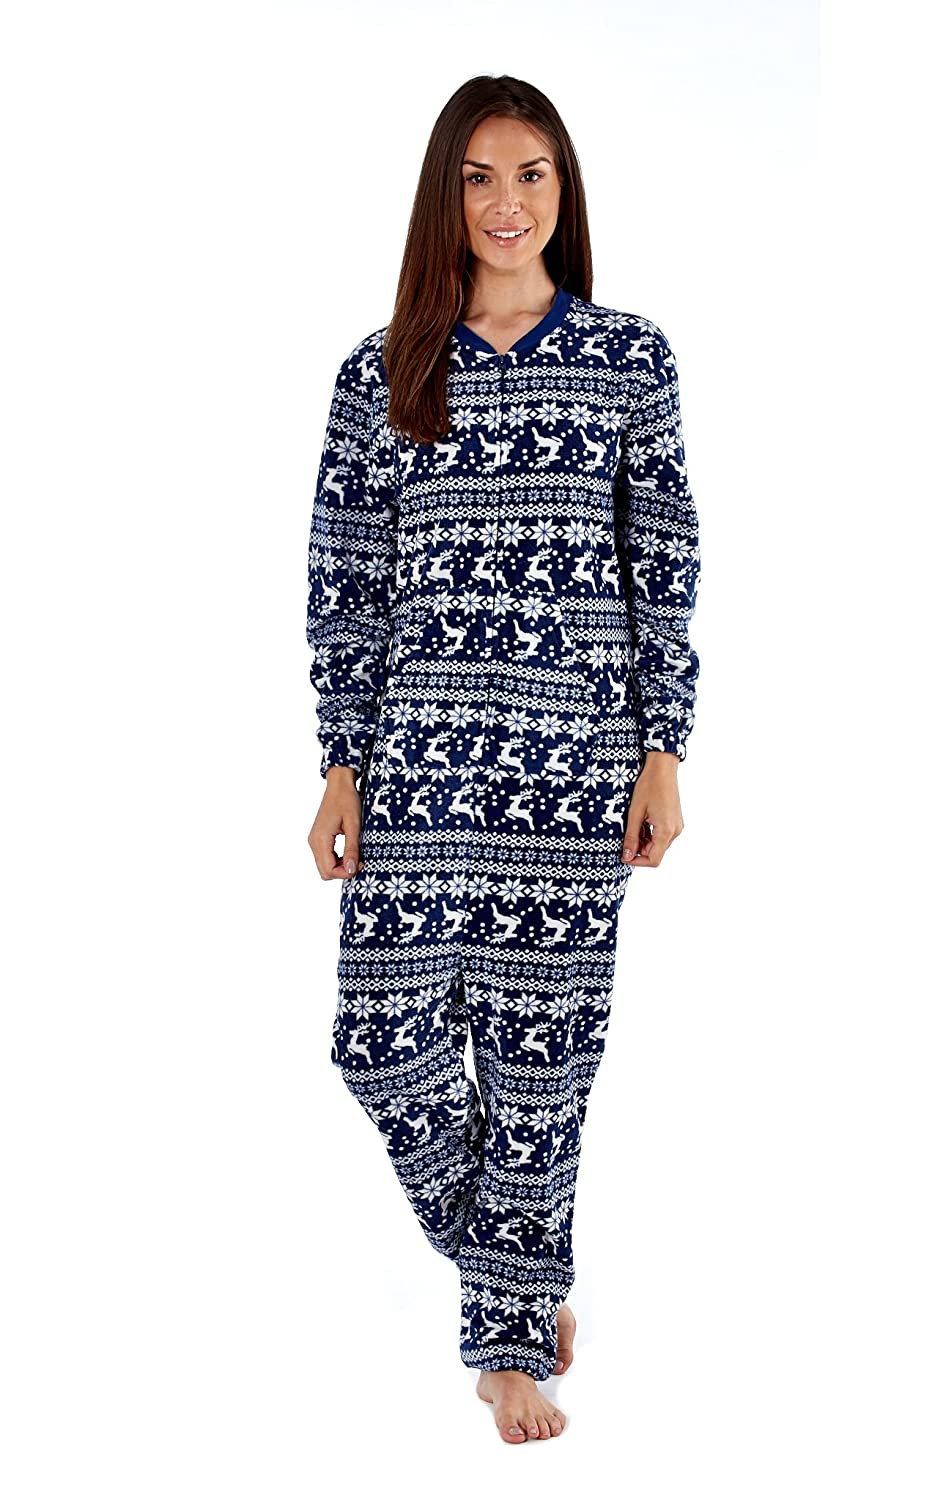 Ladies Selena Secrets Fair Isle Reindeer Design Microfleece All In One Sleepsuit